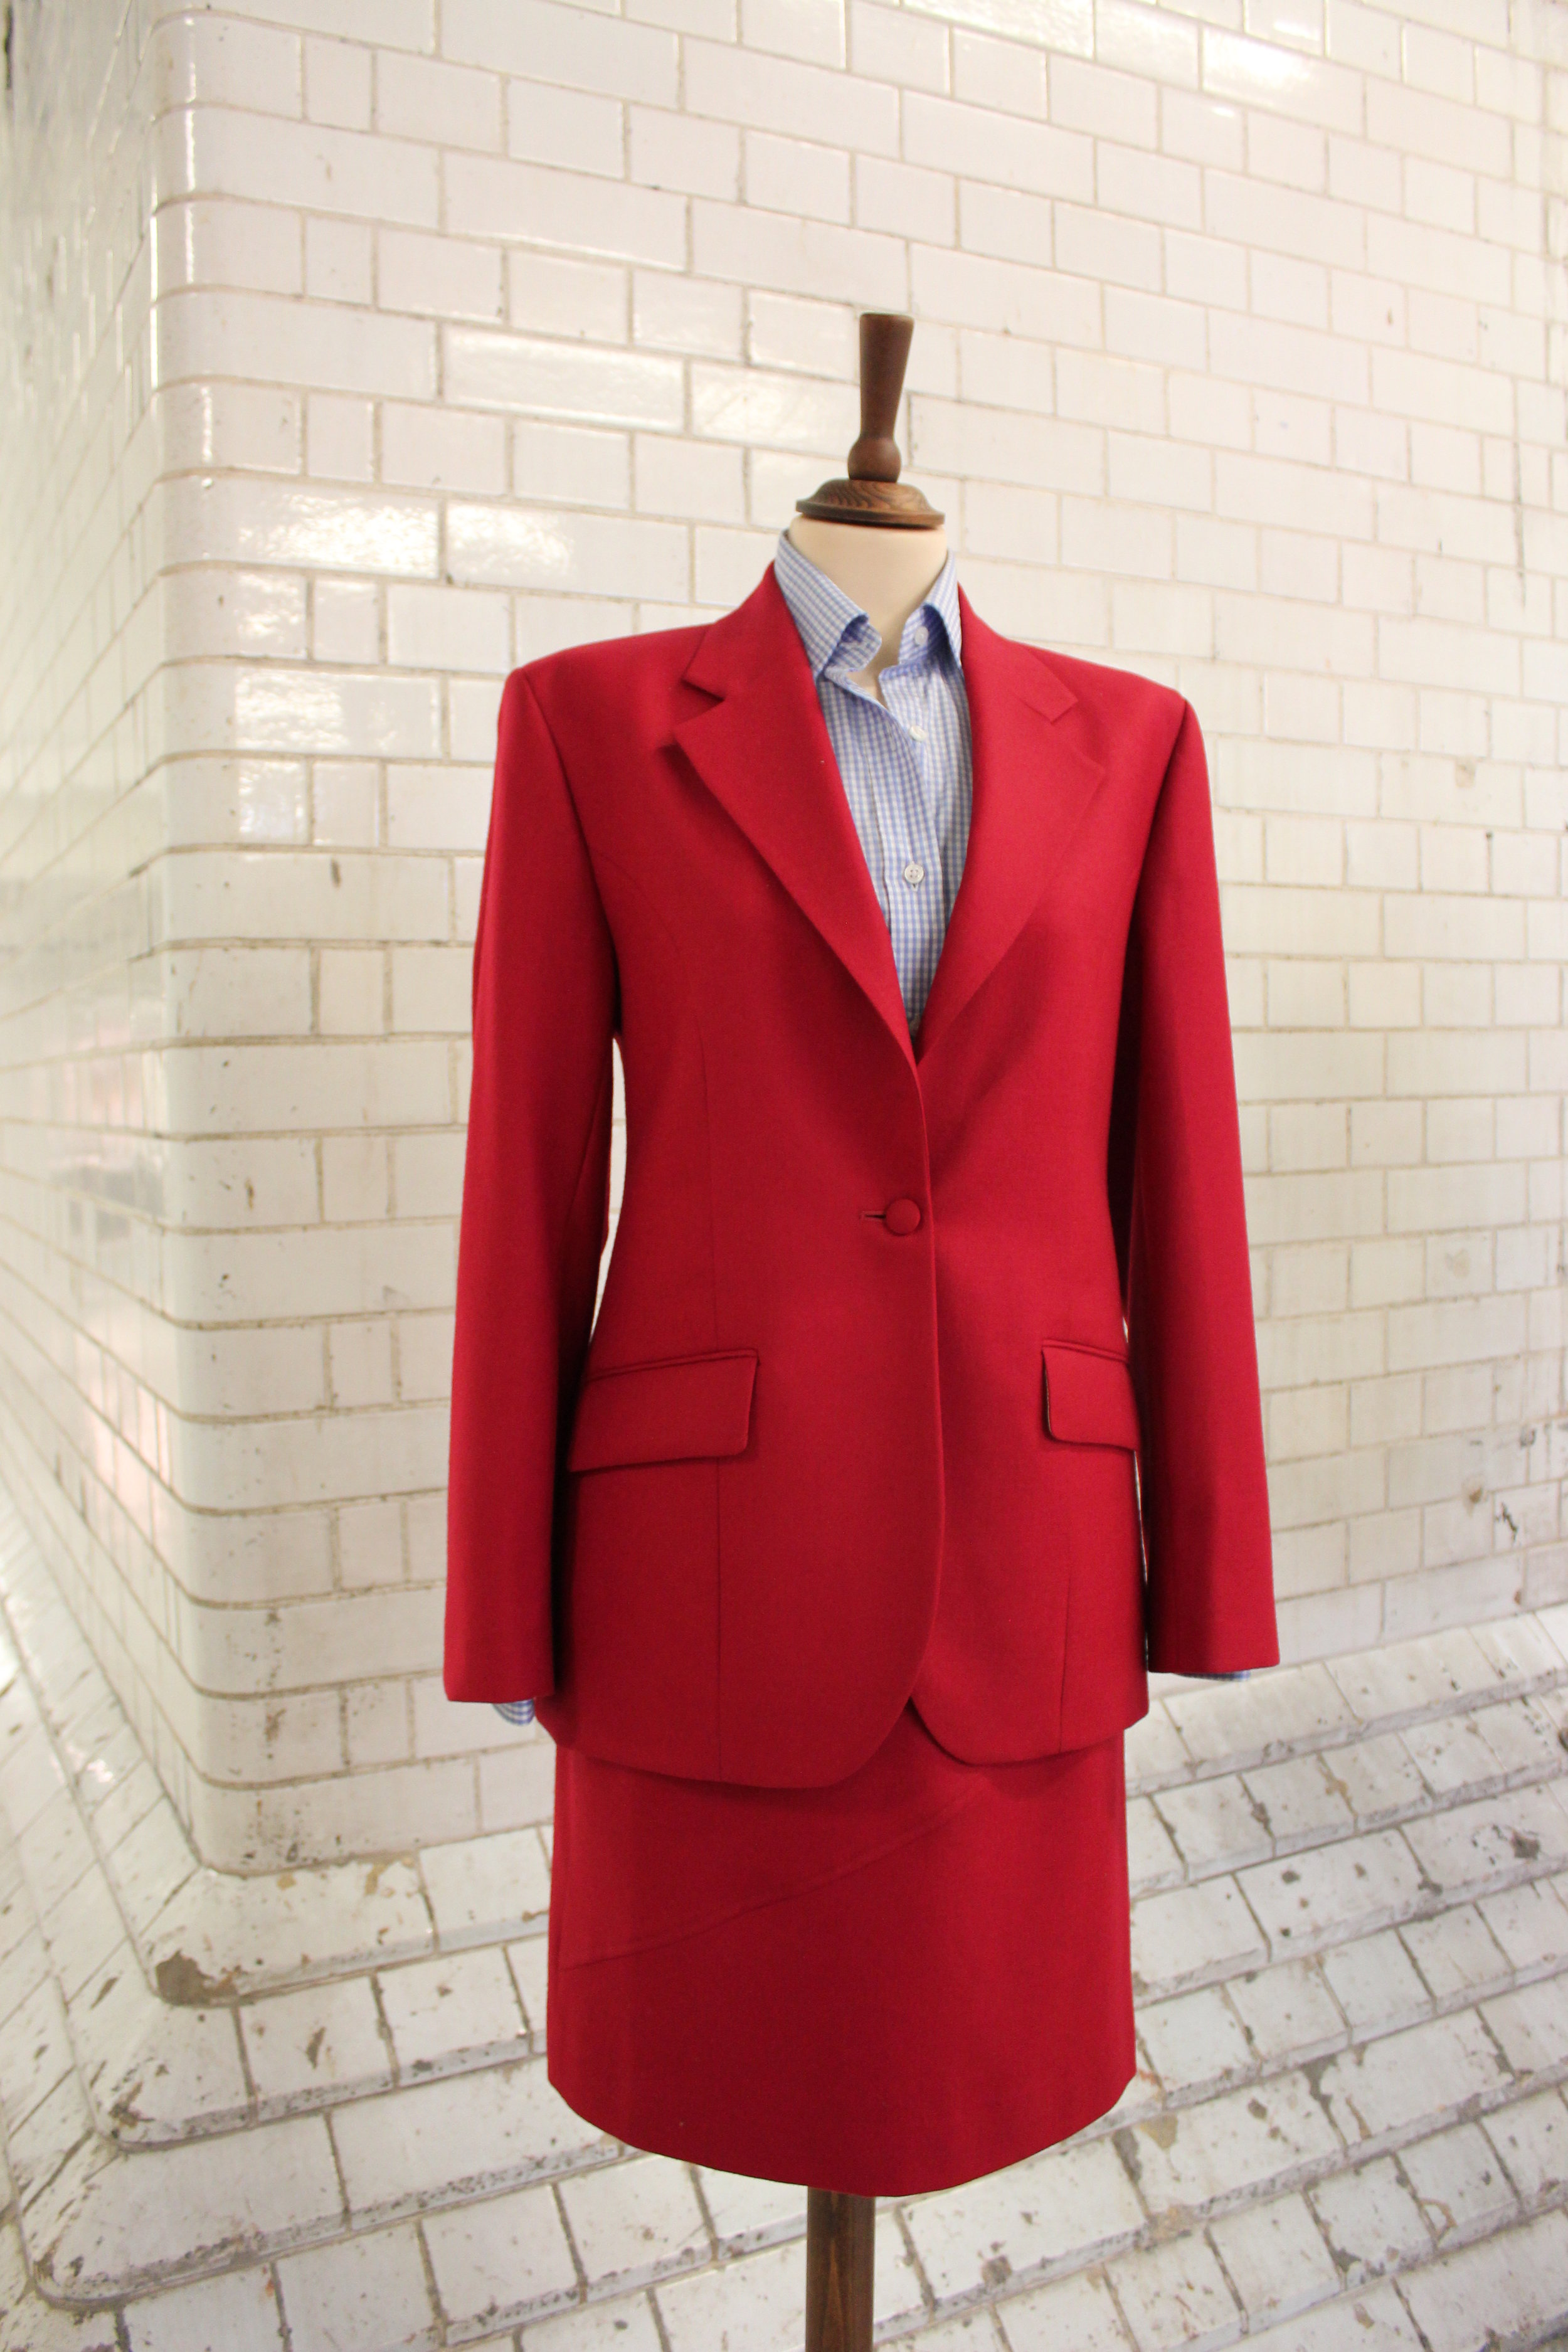 ladies-red-suit-tailor-british-all-uk-made-wool-womenswear-skirt-jacket-gingham-bespoke-shirt.JPG